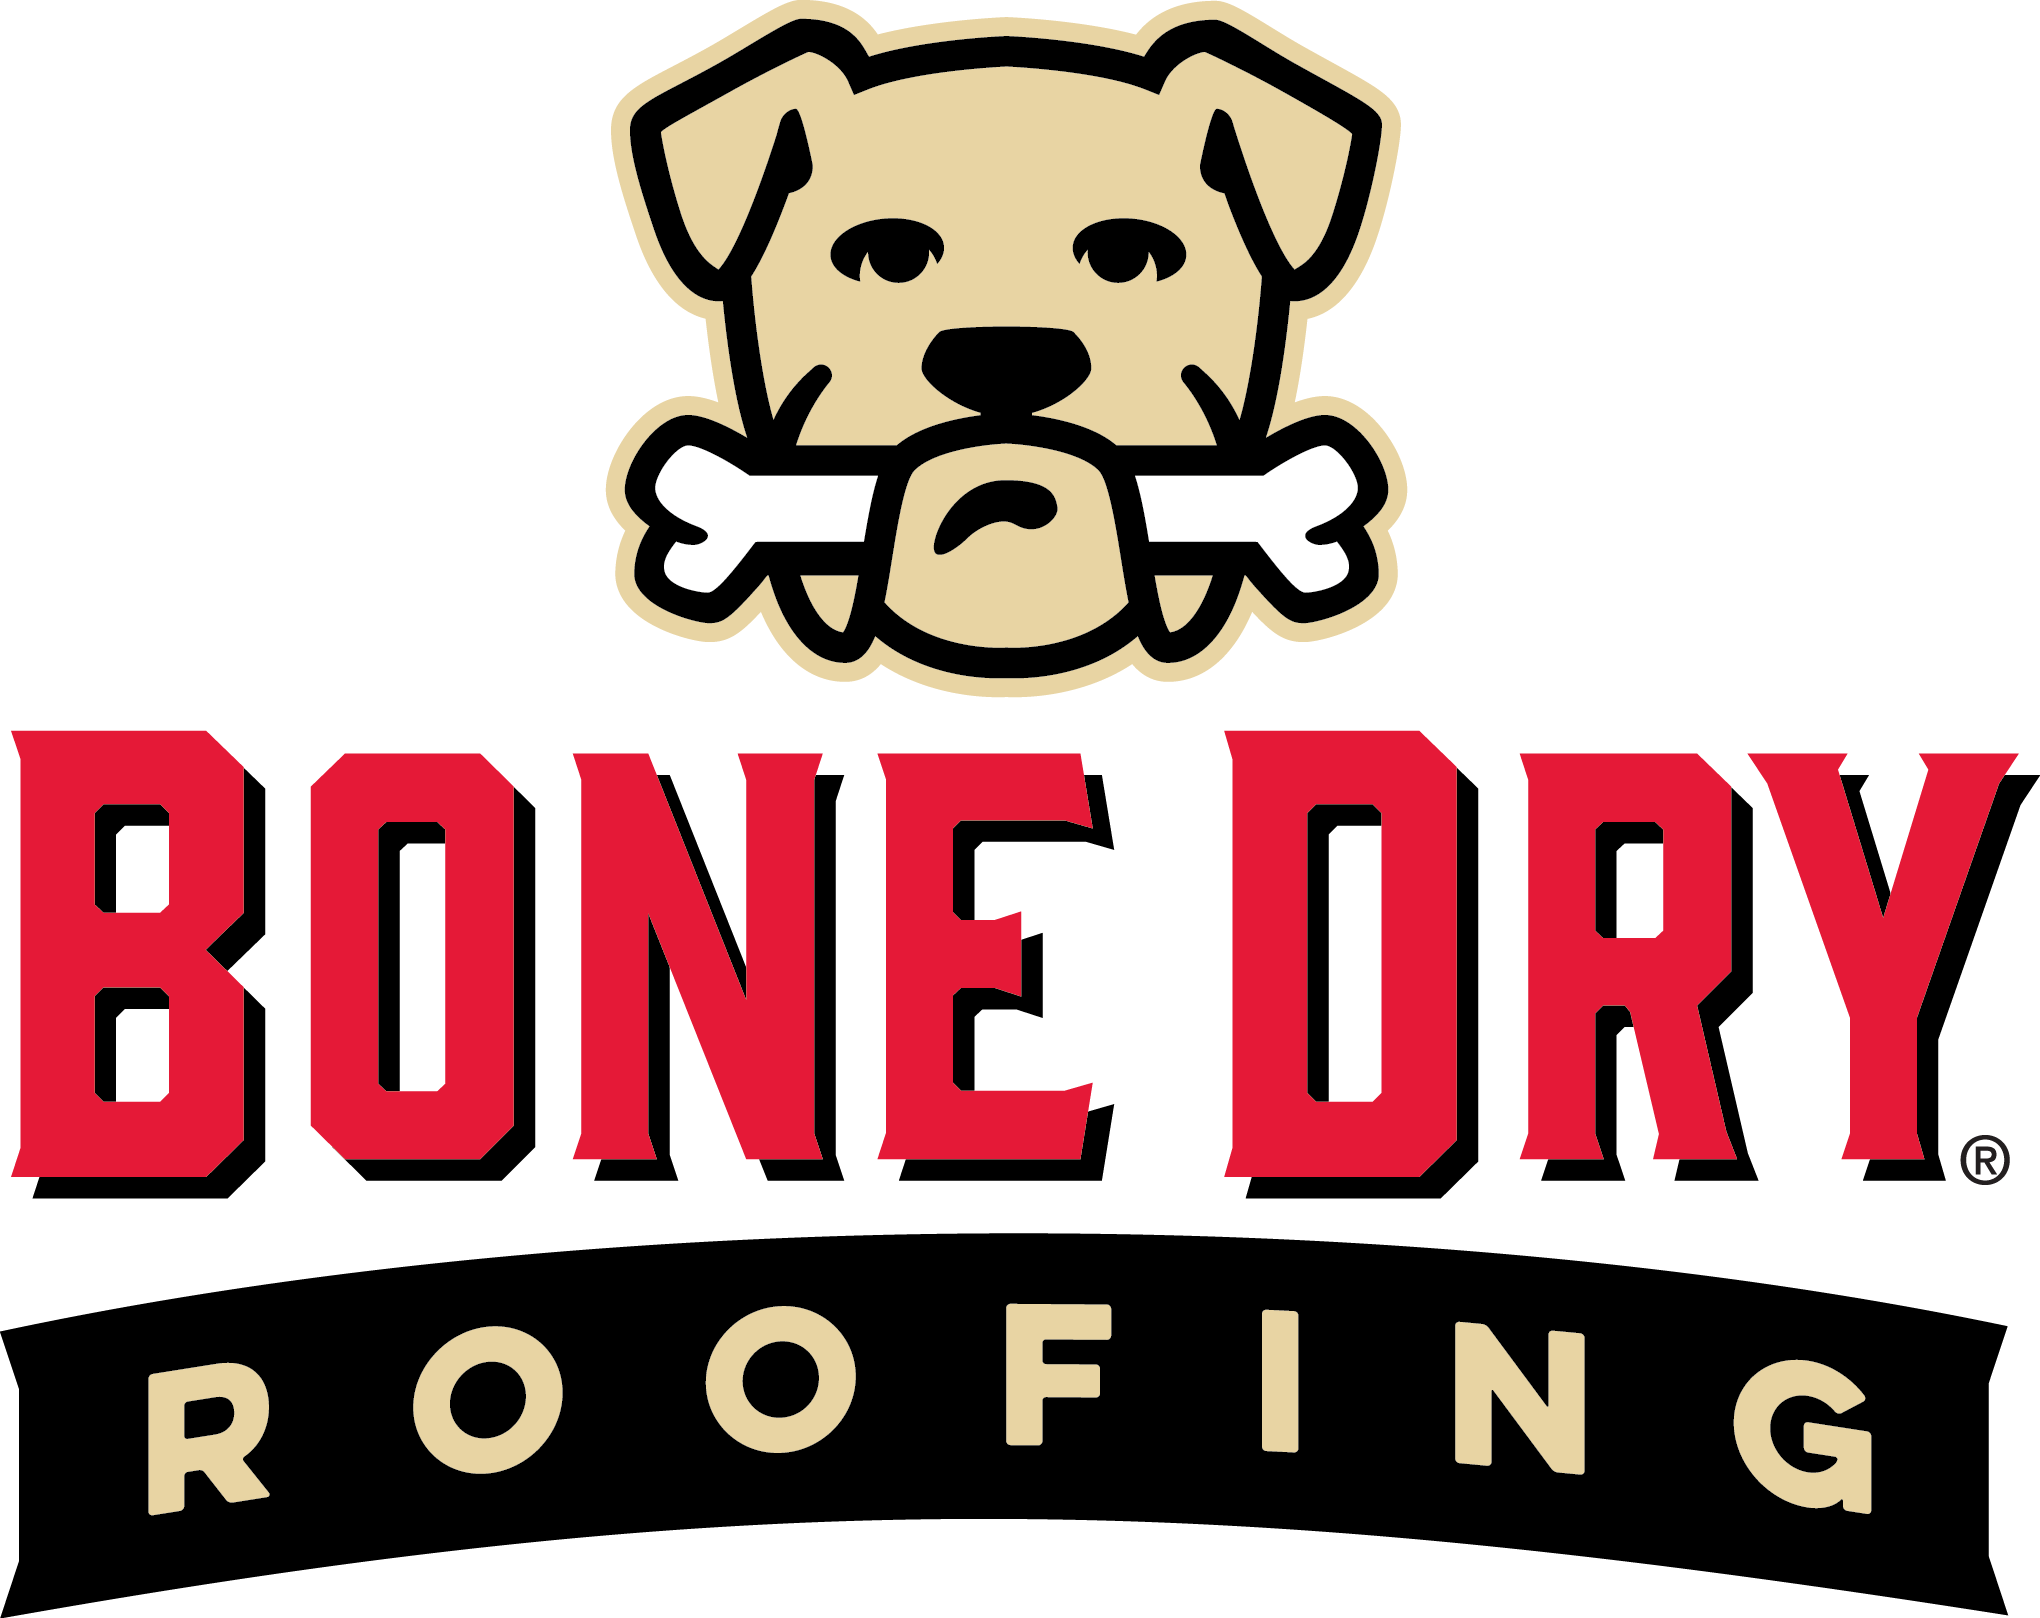 Bone Dry Roofing is a Top-Rated Roofer in Lafayette, IN, Offering Premier Roofing Services